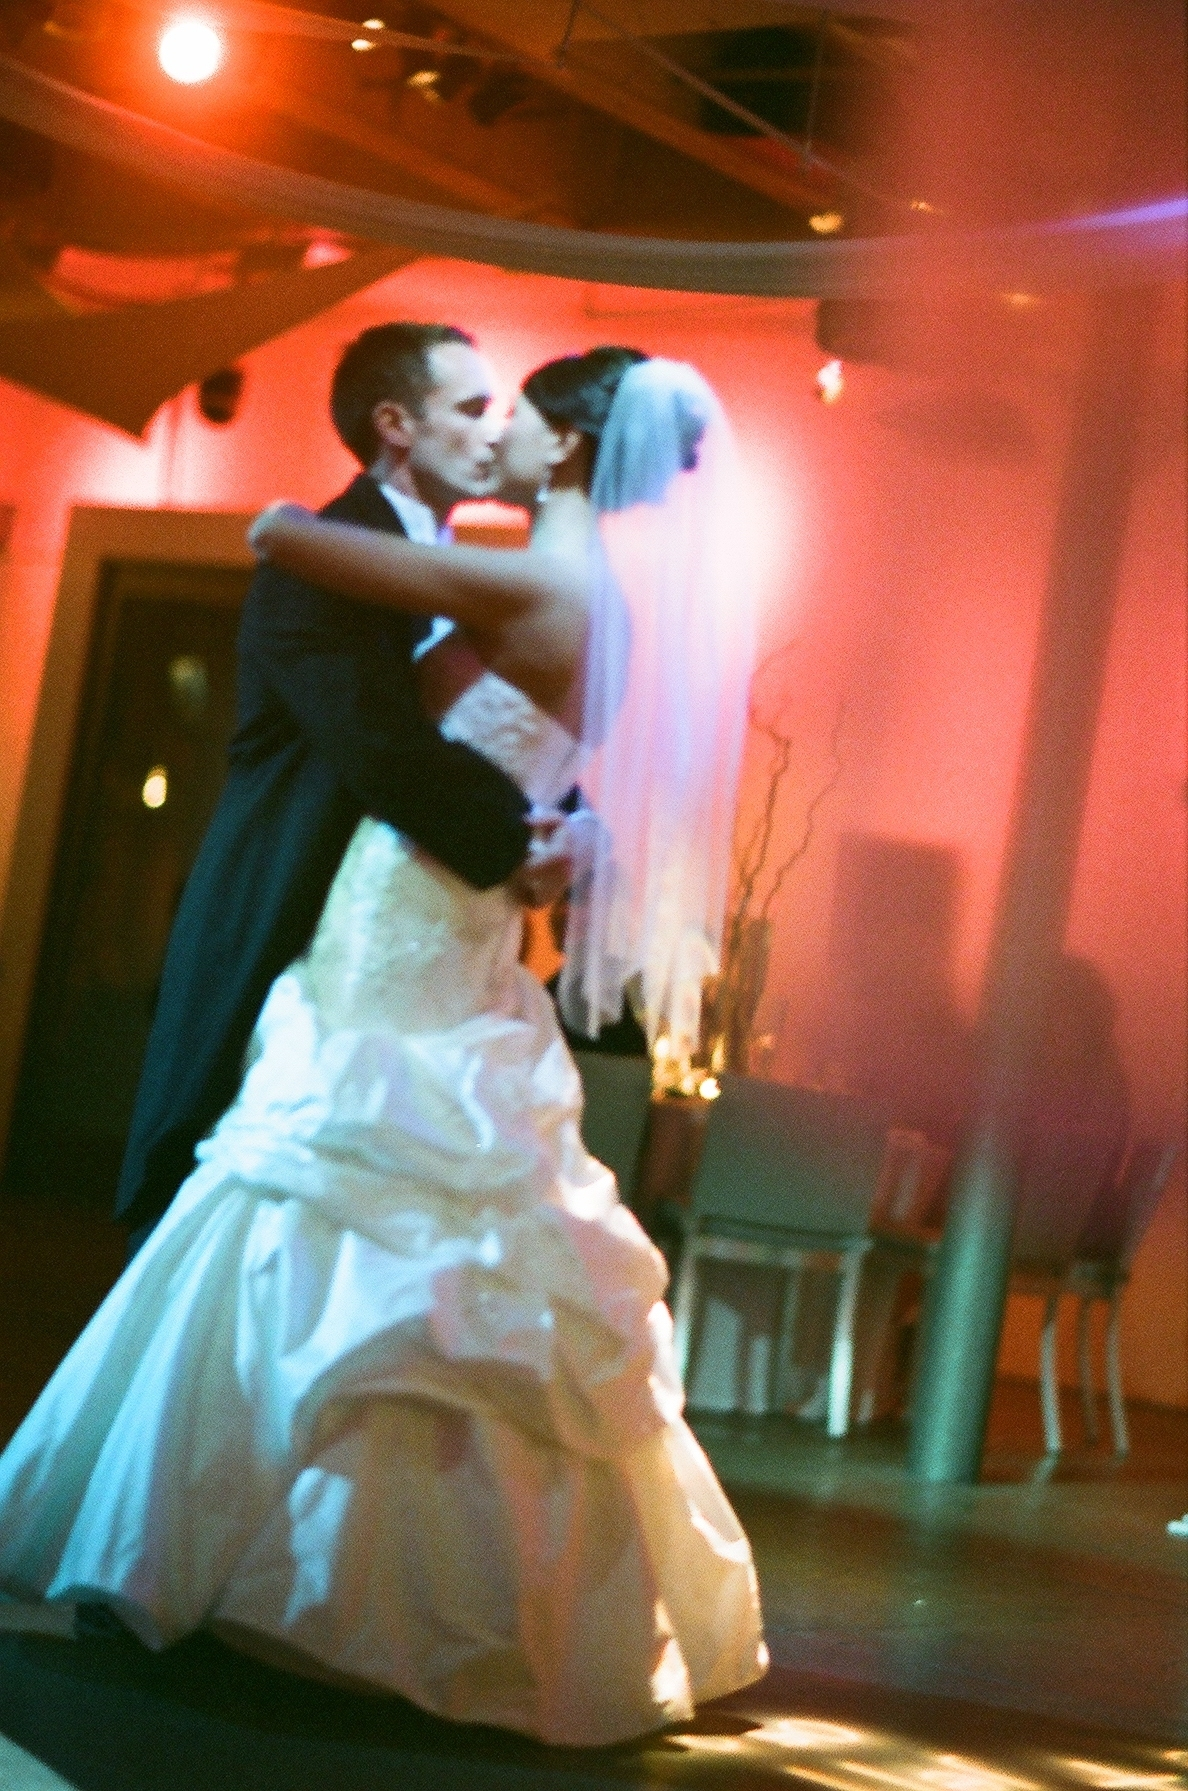 Reception, Flowers & Decor, Bride, Groom, Dance, First, Together